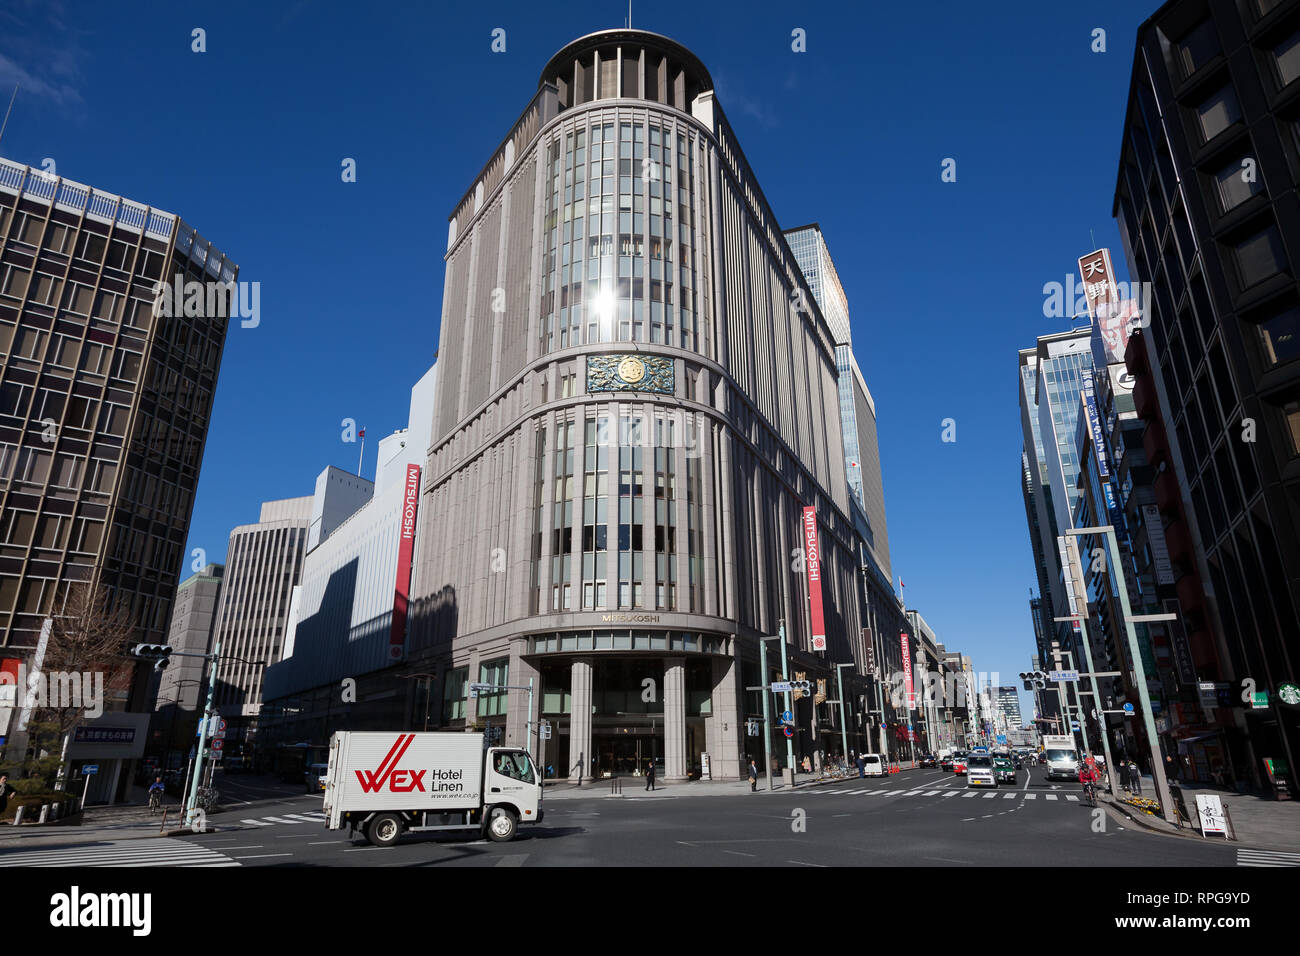 The famous Mitsukoshi Department Store in Nihonbashi, Tokyo, Japan. Friday, January 10th 2014 - Stock Image